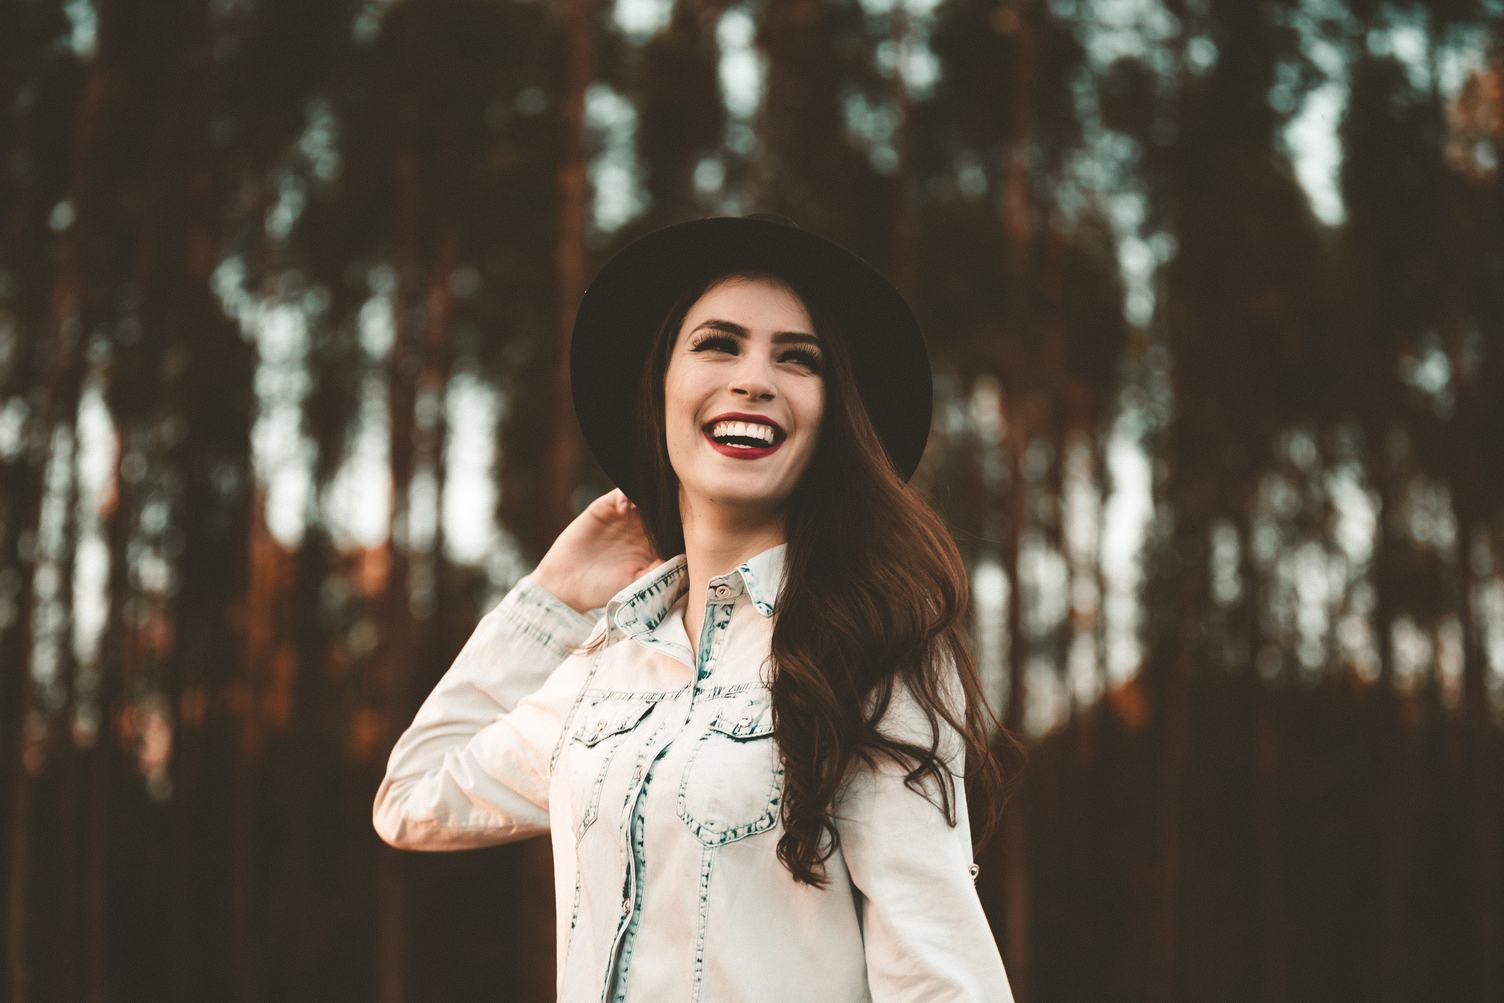 Stylish Young Woman Wearing Black hat Smiling against Blurred Trees